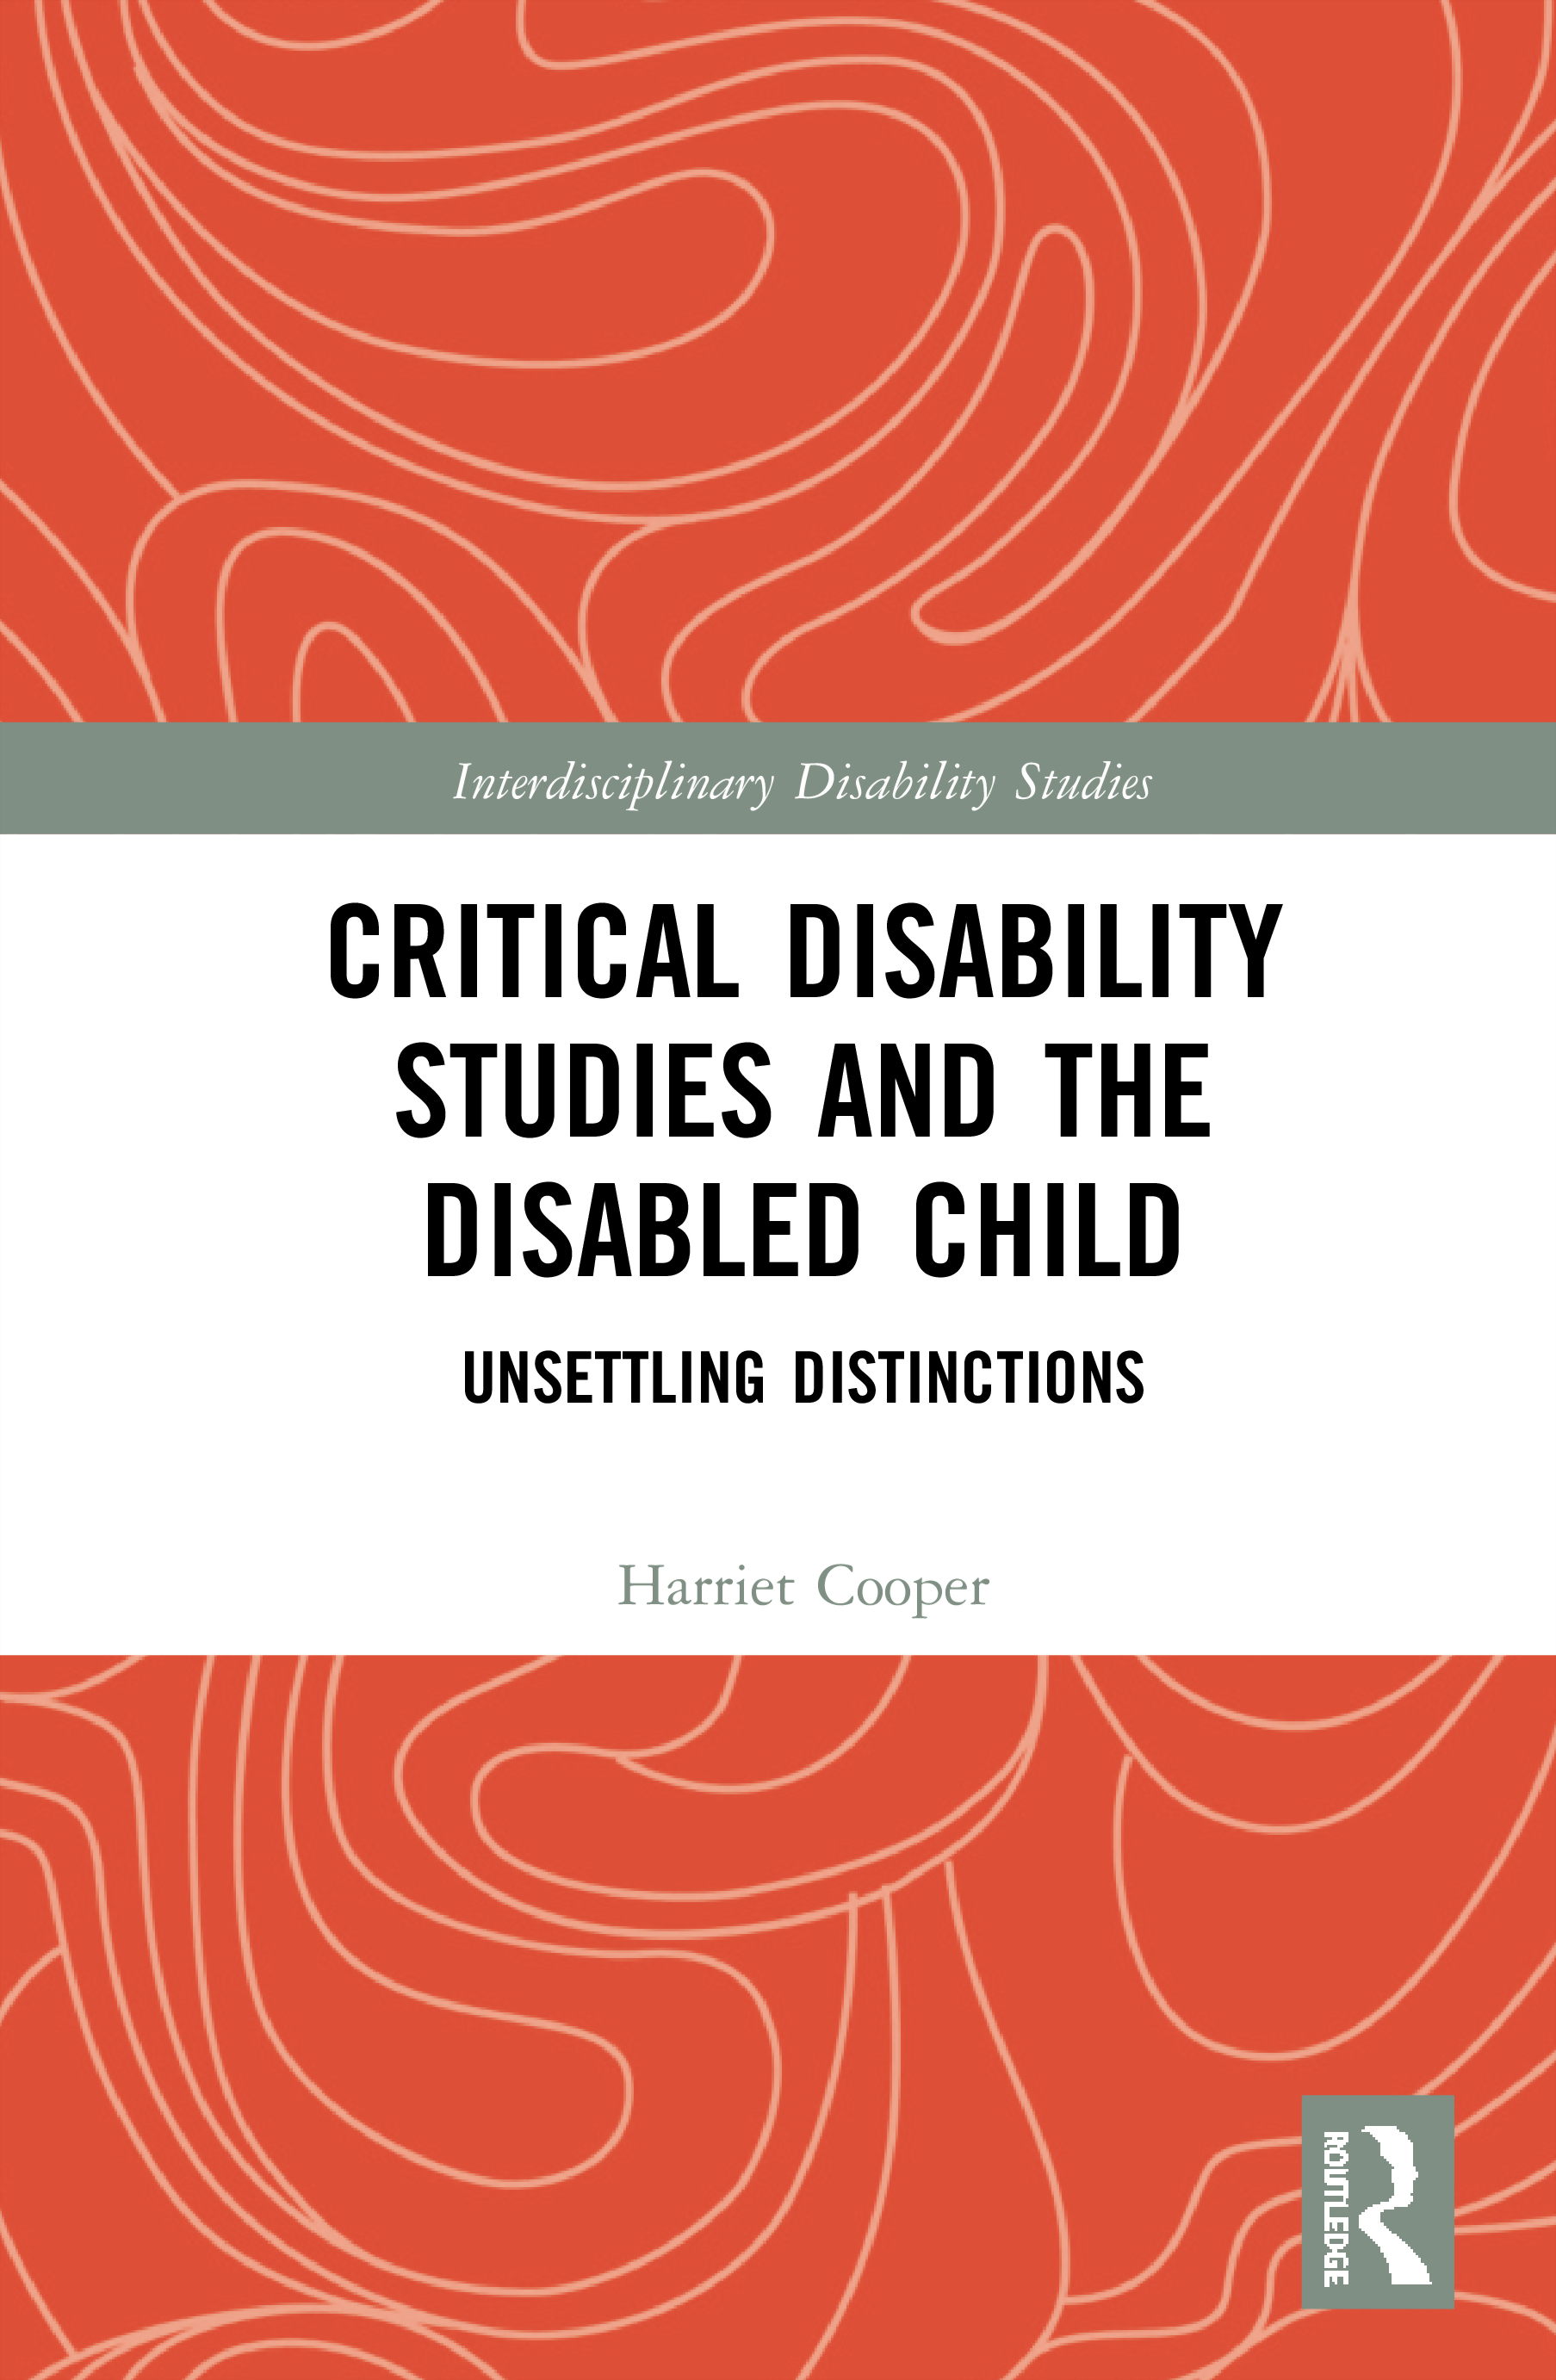 Critical Disability Studies and the Disabled Child: Unsettling Distinctions book cover